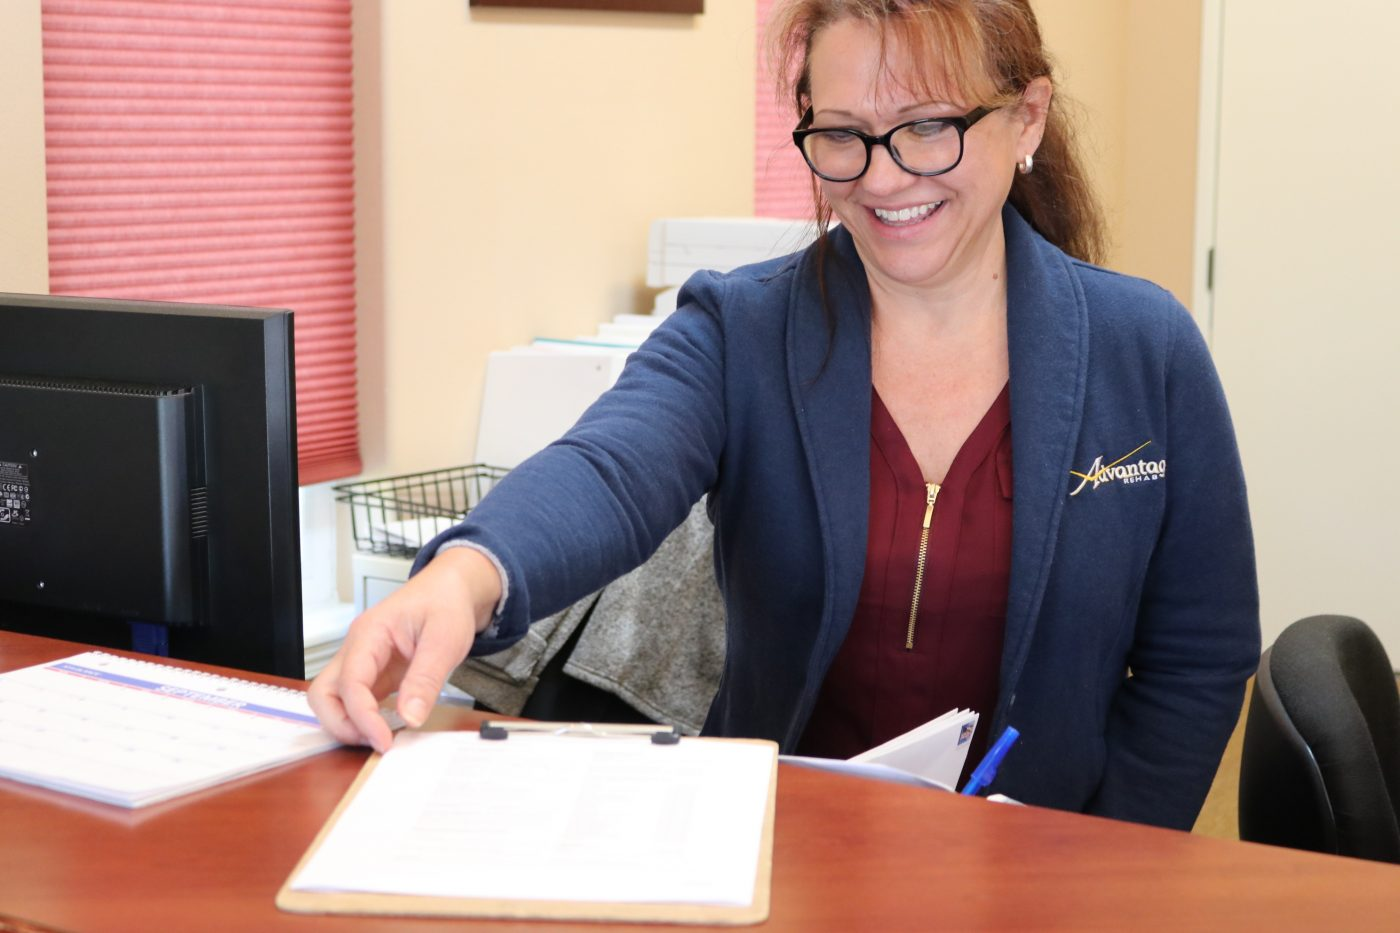 Advantage Rehabs Front Office Manager assisting patients with their intake paperwork in our Cody Clinic